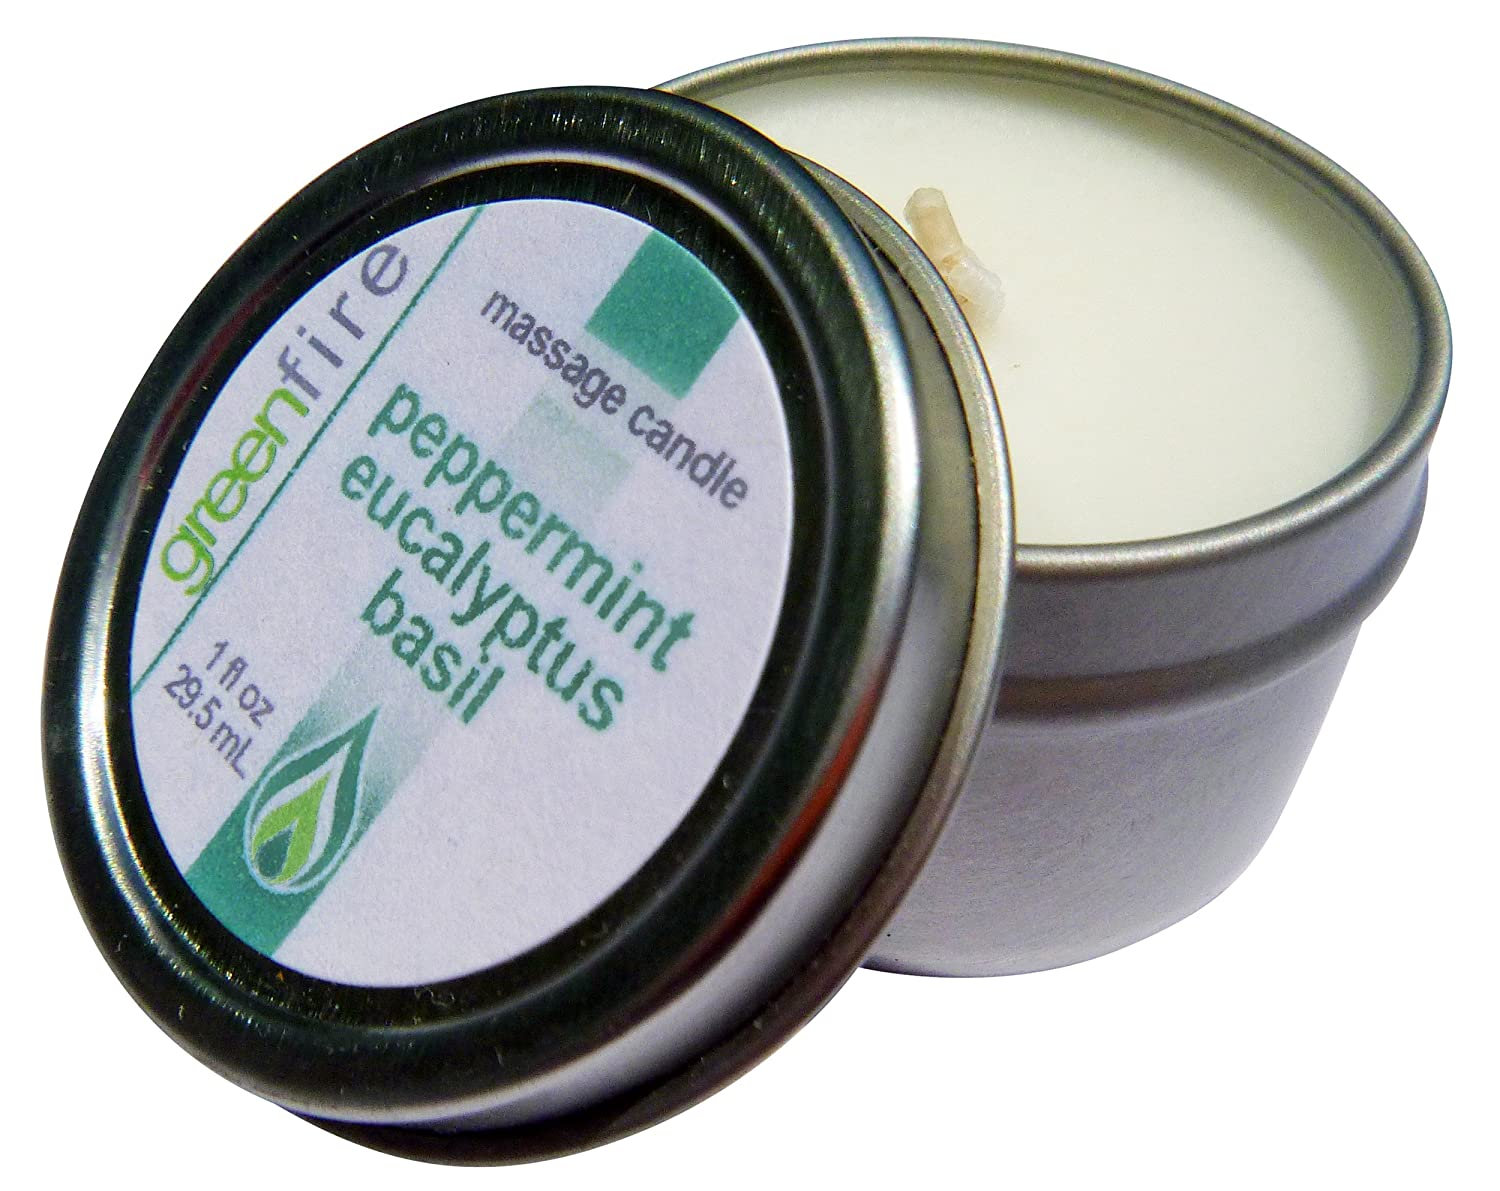 Peppermint Eucalyptus Basil Lavender Sandalwood Vanilla Size: 1 fl. ounce each Greenfire 3pk All Natural Massage Oil Candles Greenfire Products 1OZPK31 Orange Carrot Coconut